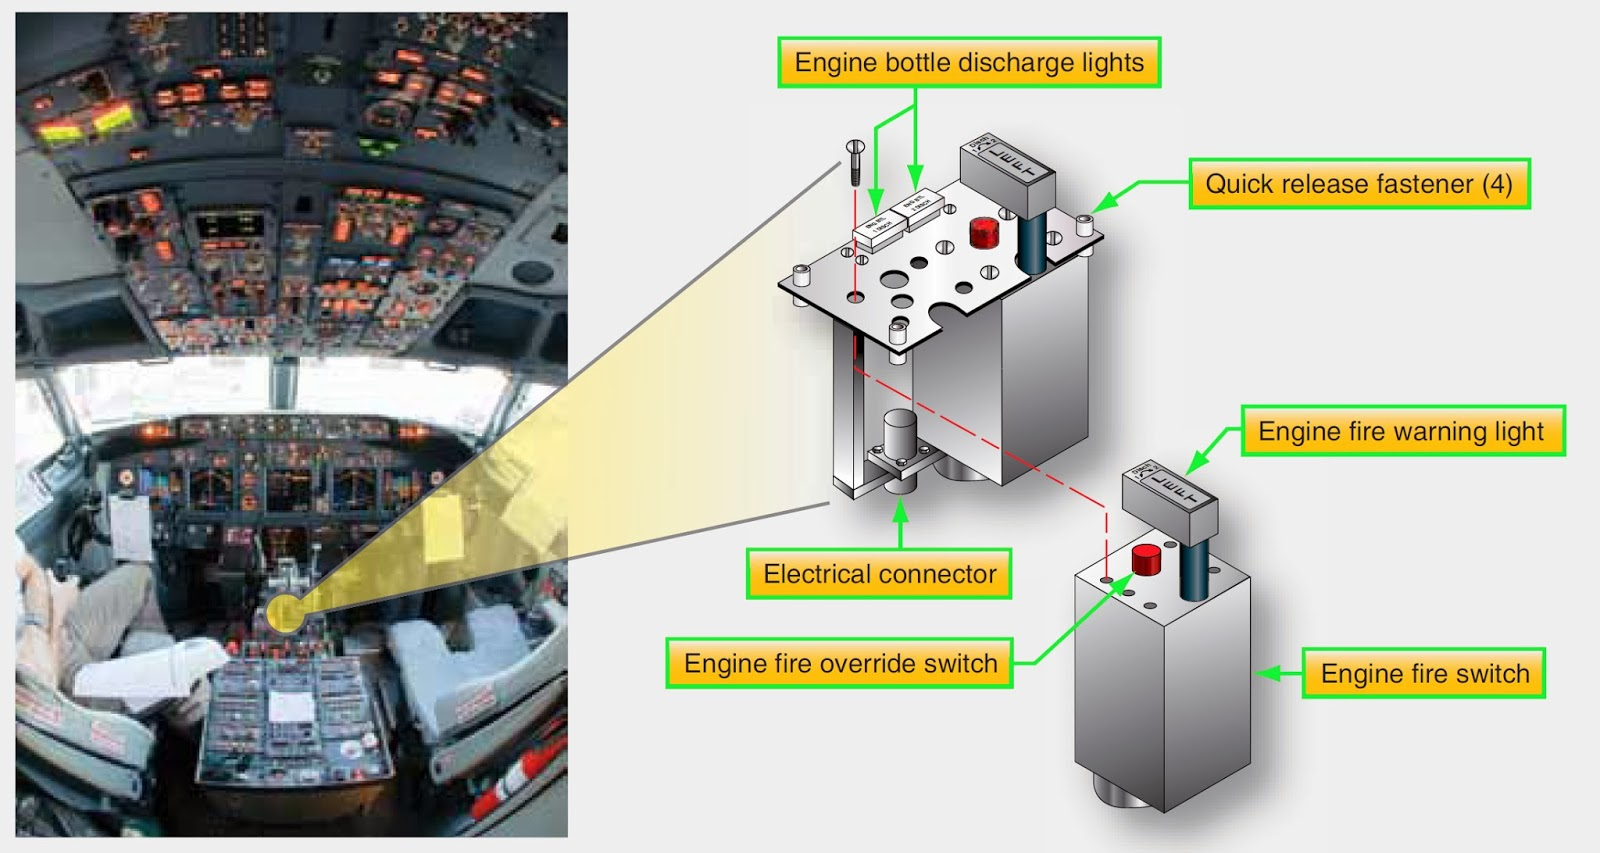 hight resolution of boeing 777 aircraft fire detection and extinguishing system